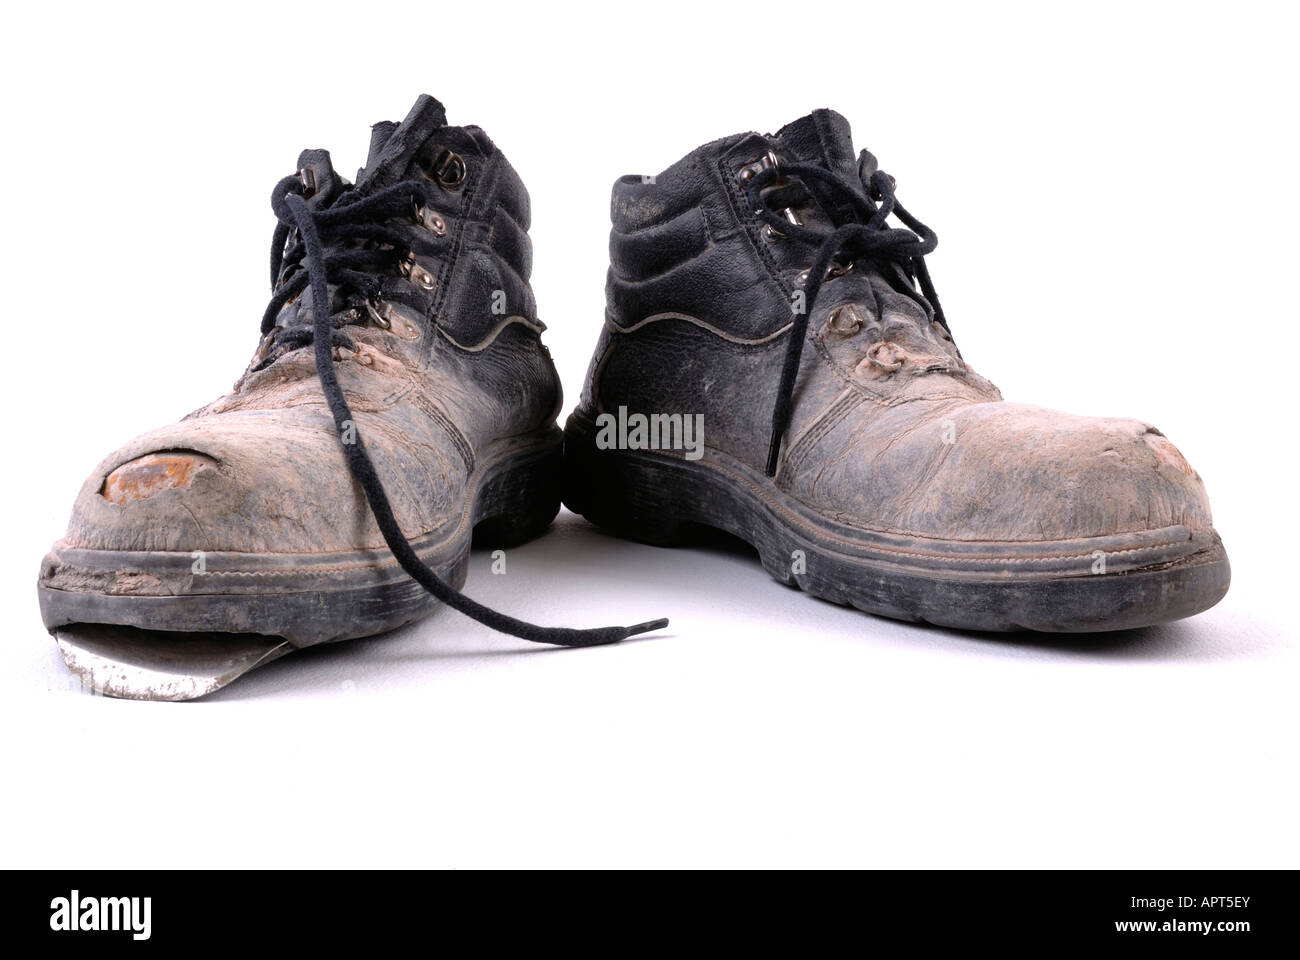 Old work boots - Stock Image